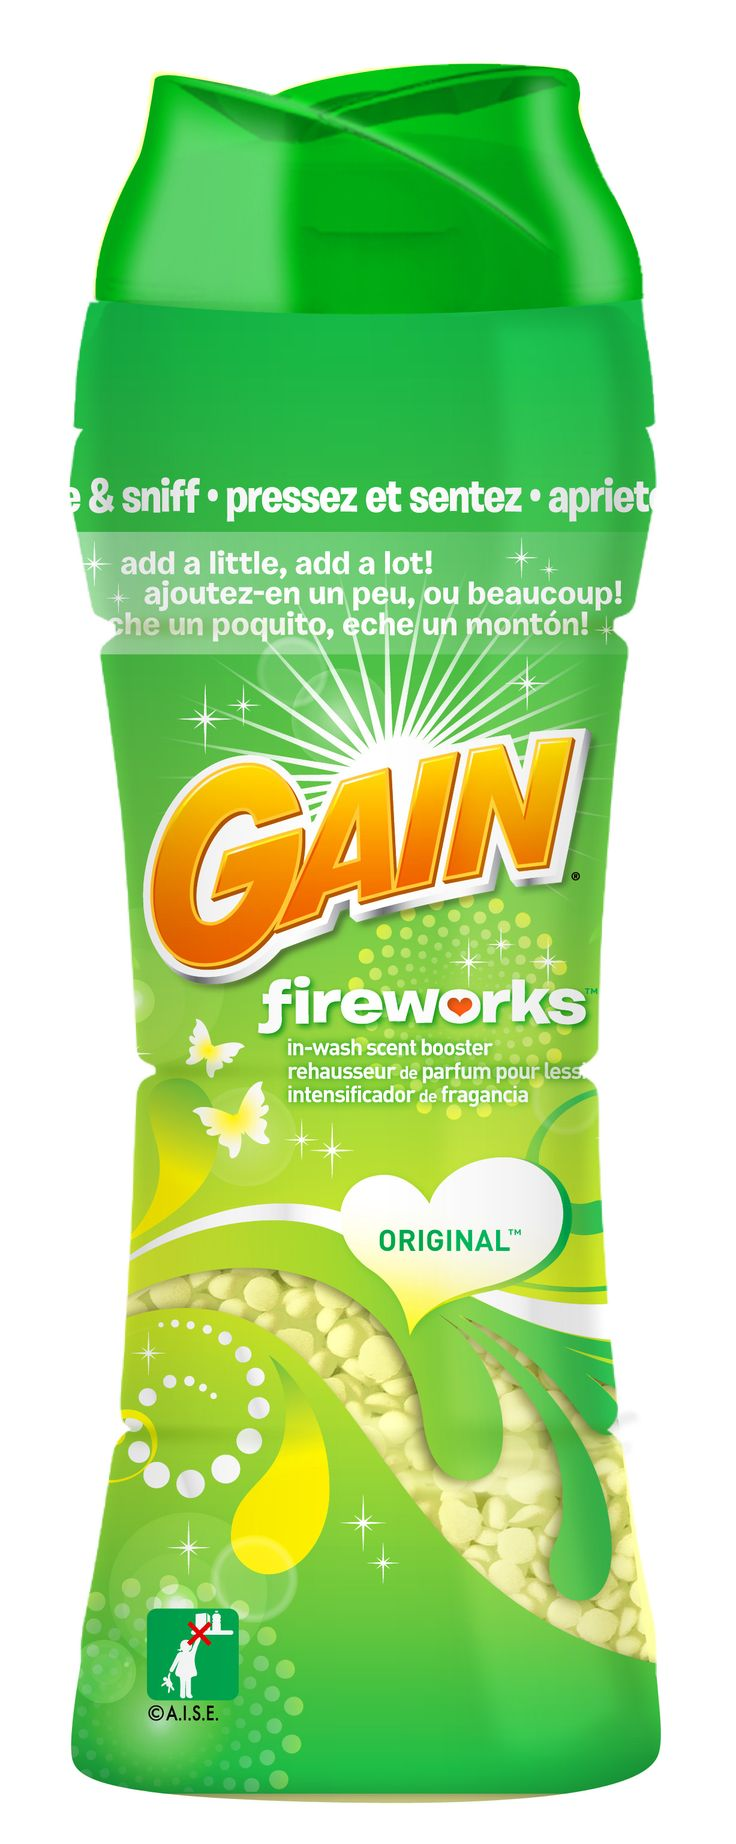 Gain Fireworks Review and Giveaway